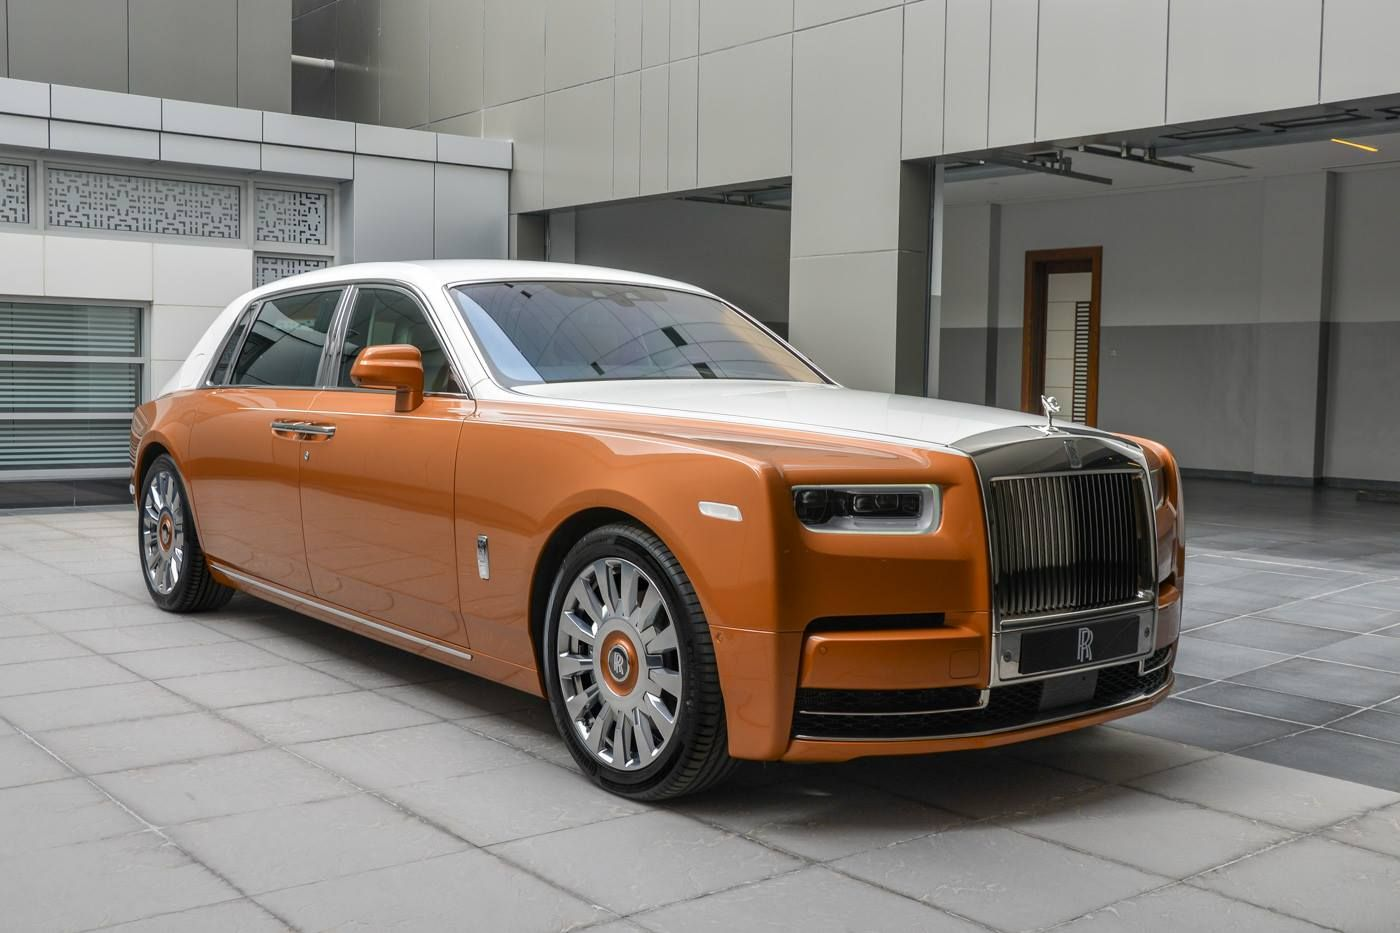 Rolls Royce Phantom Ewb With Privacy Suite Is The Majestic Way To Isolate Yourself Carscoops Rolls Royce Phantom Rolls Royce Luxury Cars Rolls Royce